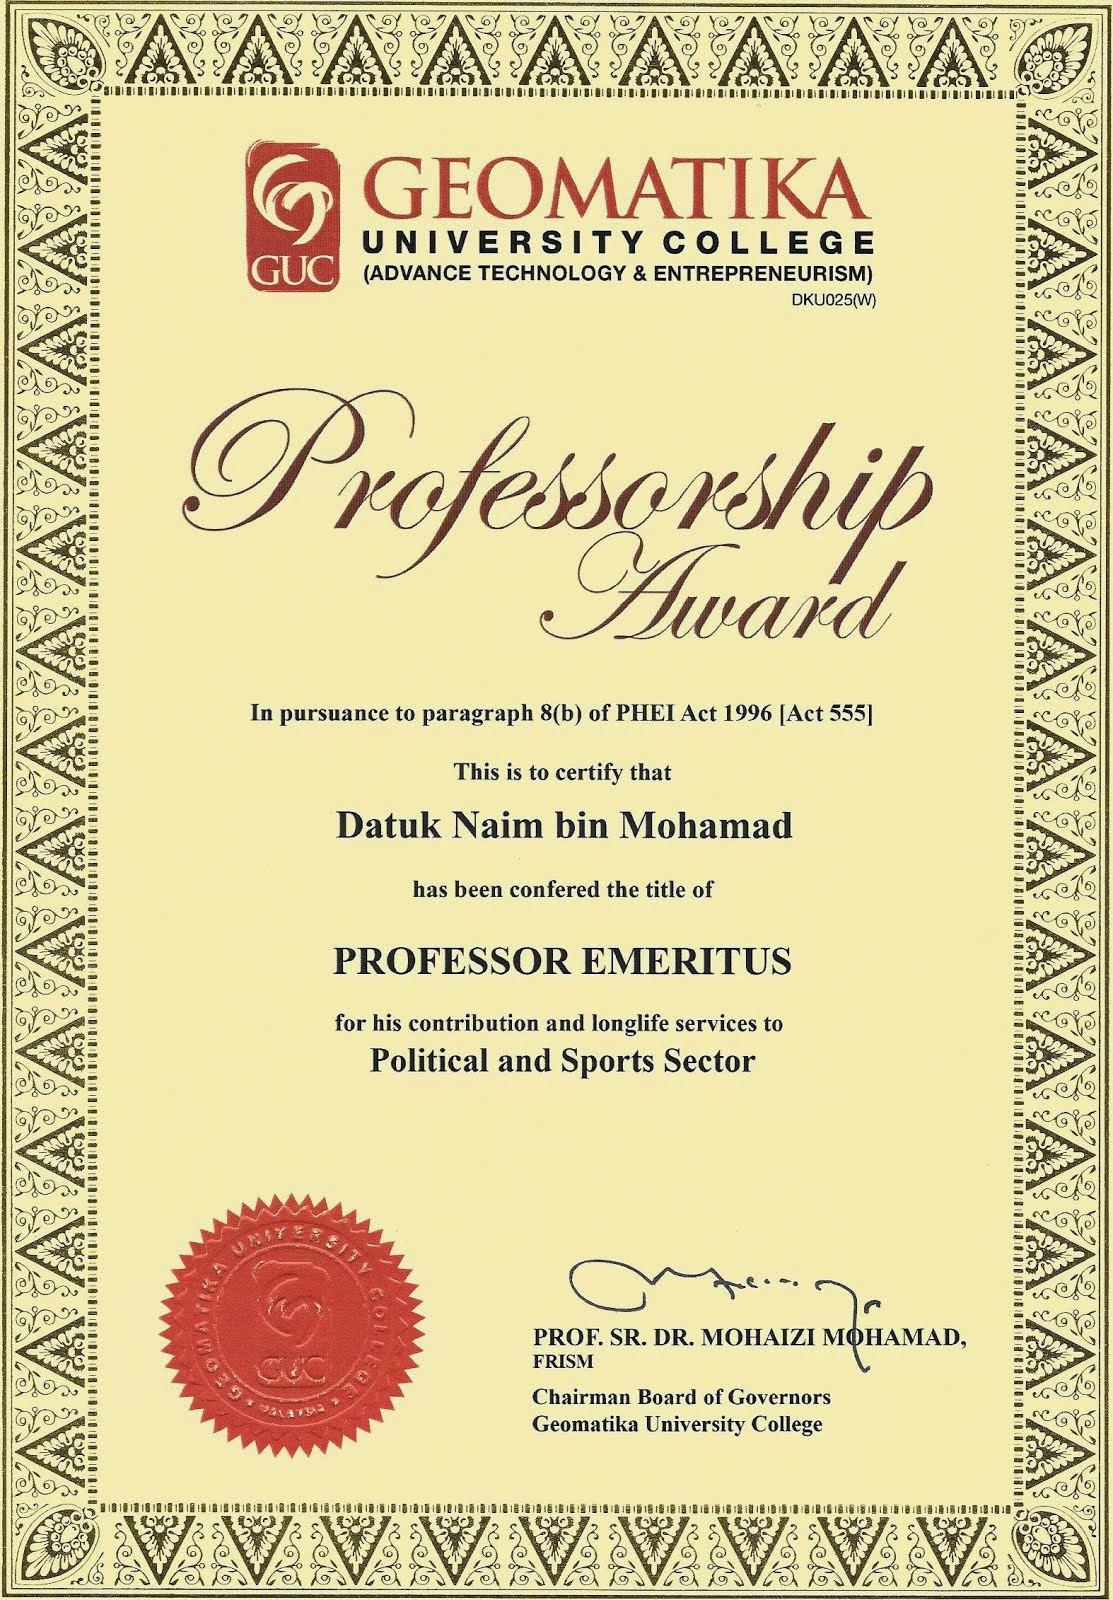 Professorship Award